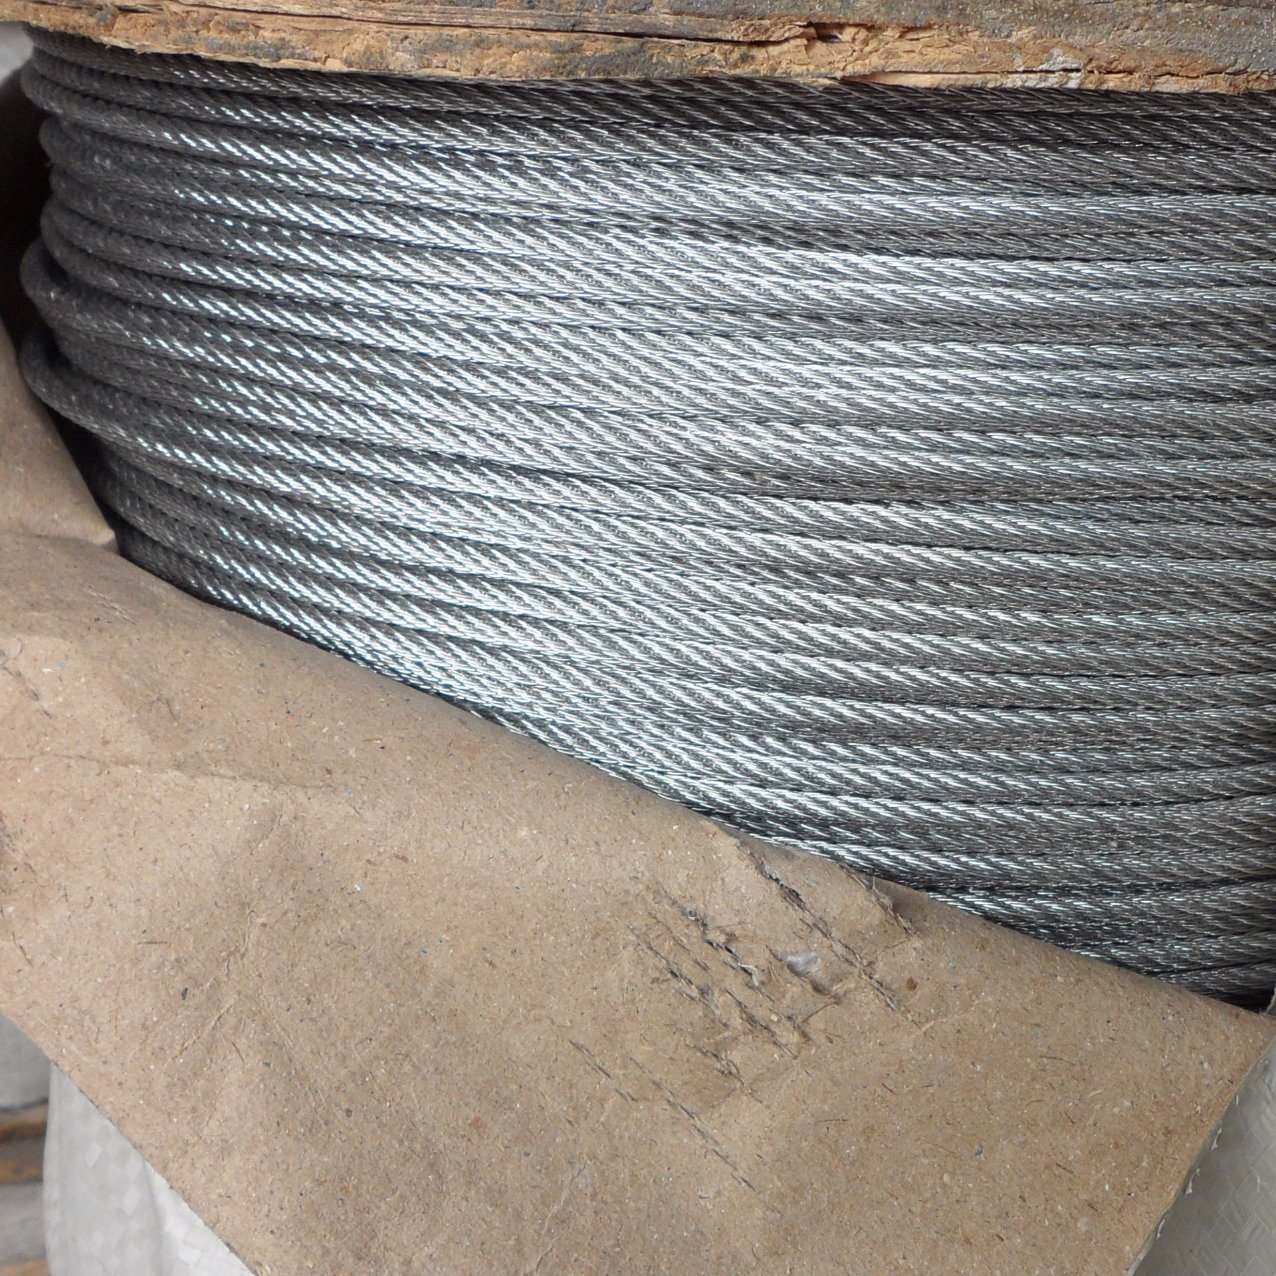 "50/' 3//32/"" 2.5mm 7x19 Stainless Steel T316 Cable Wire Rope"